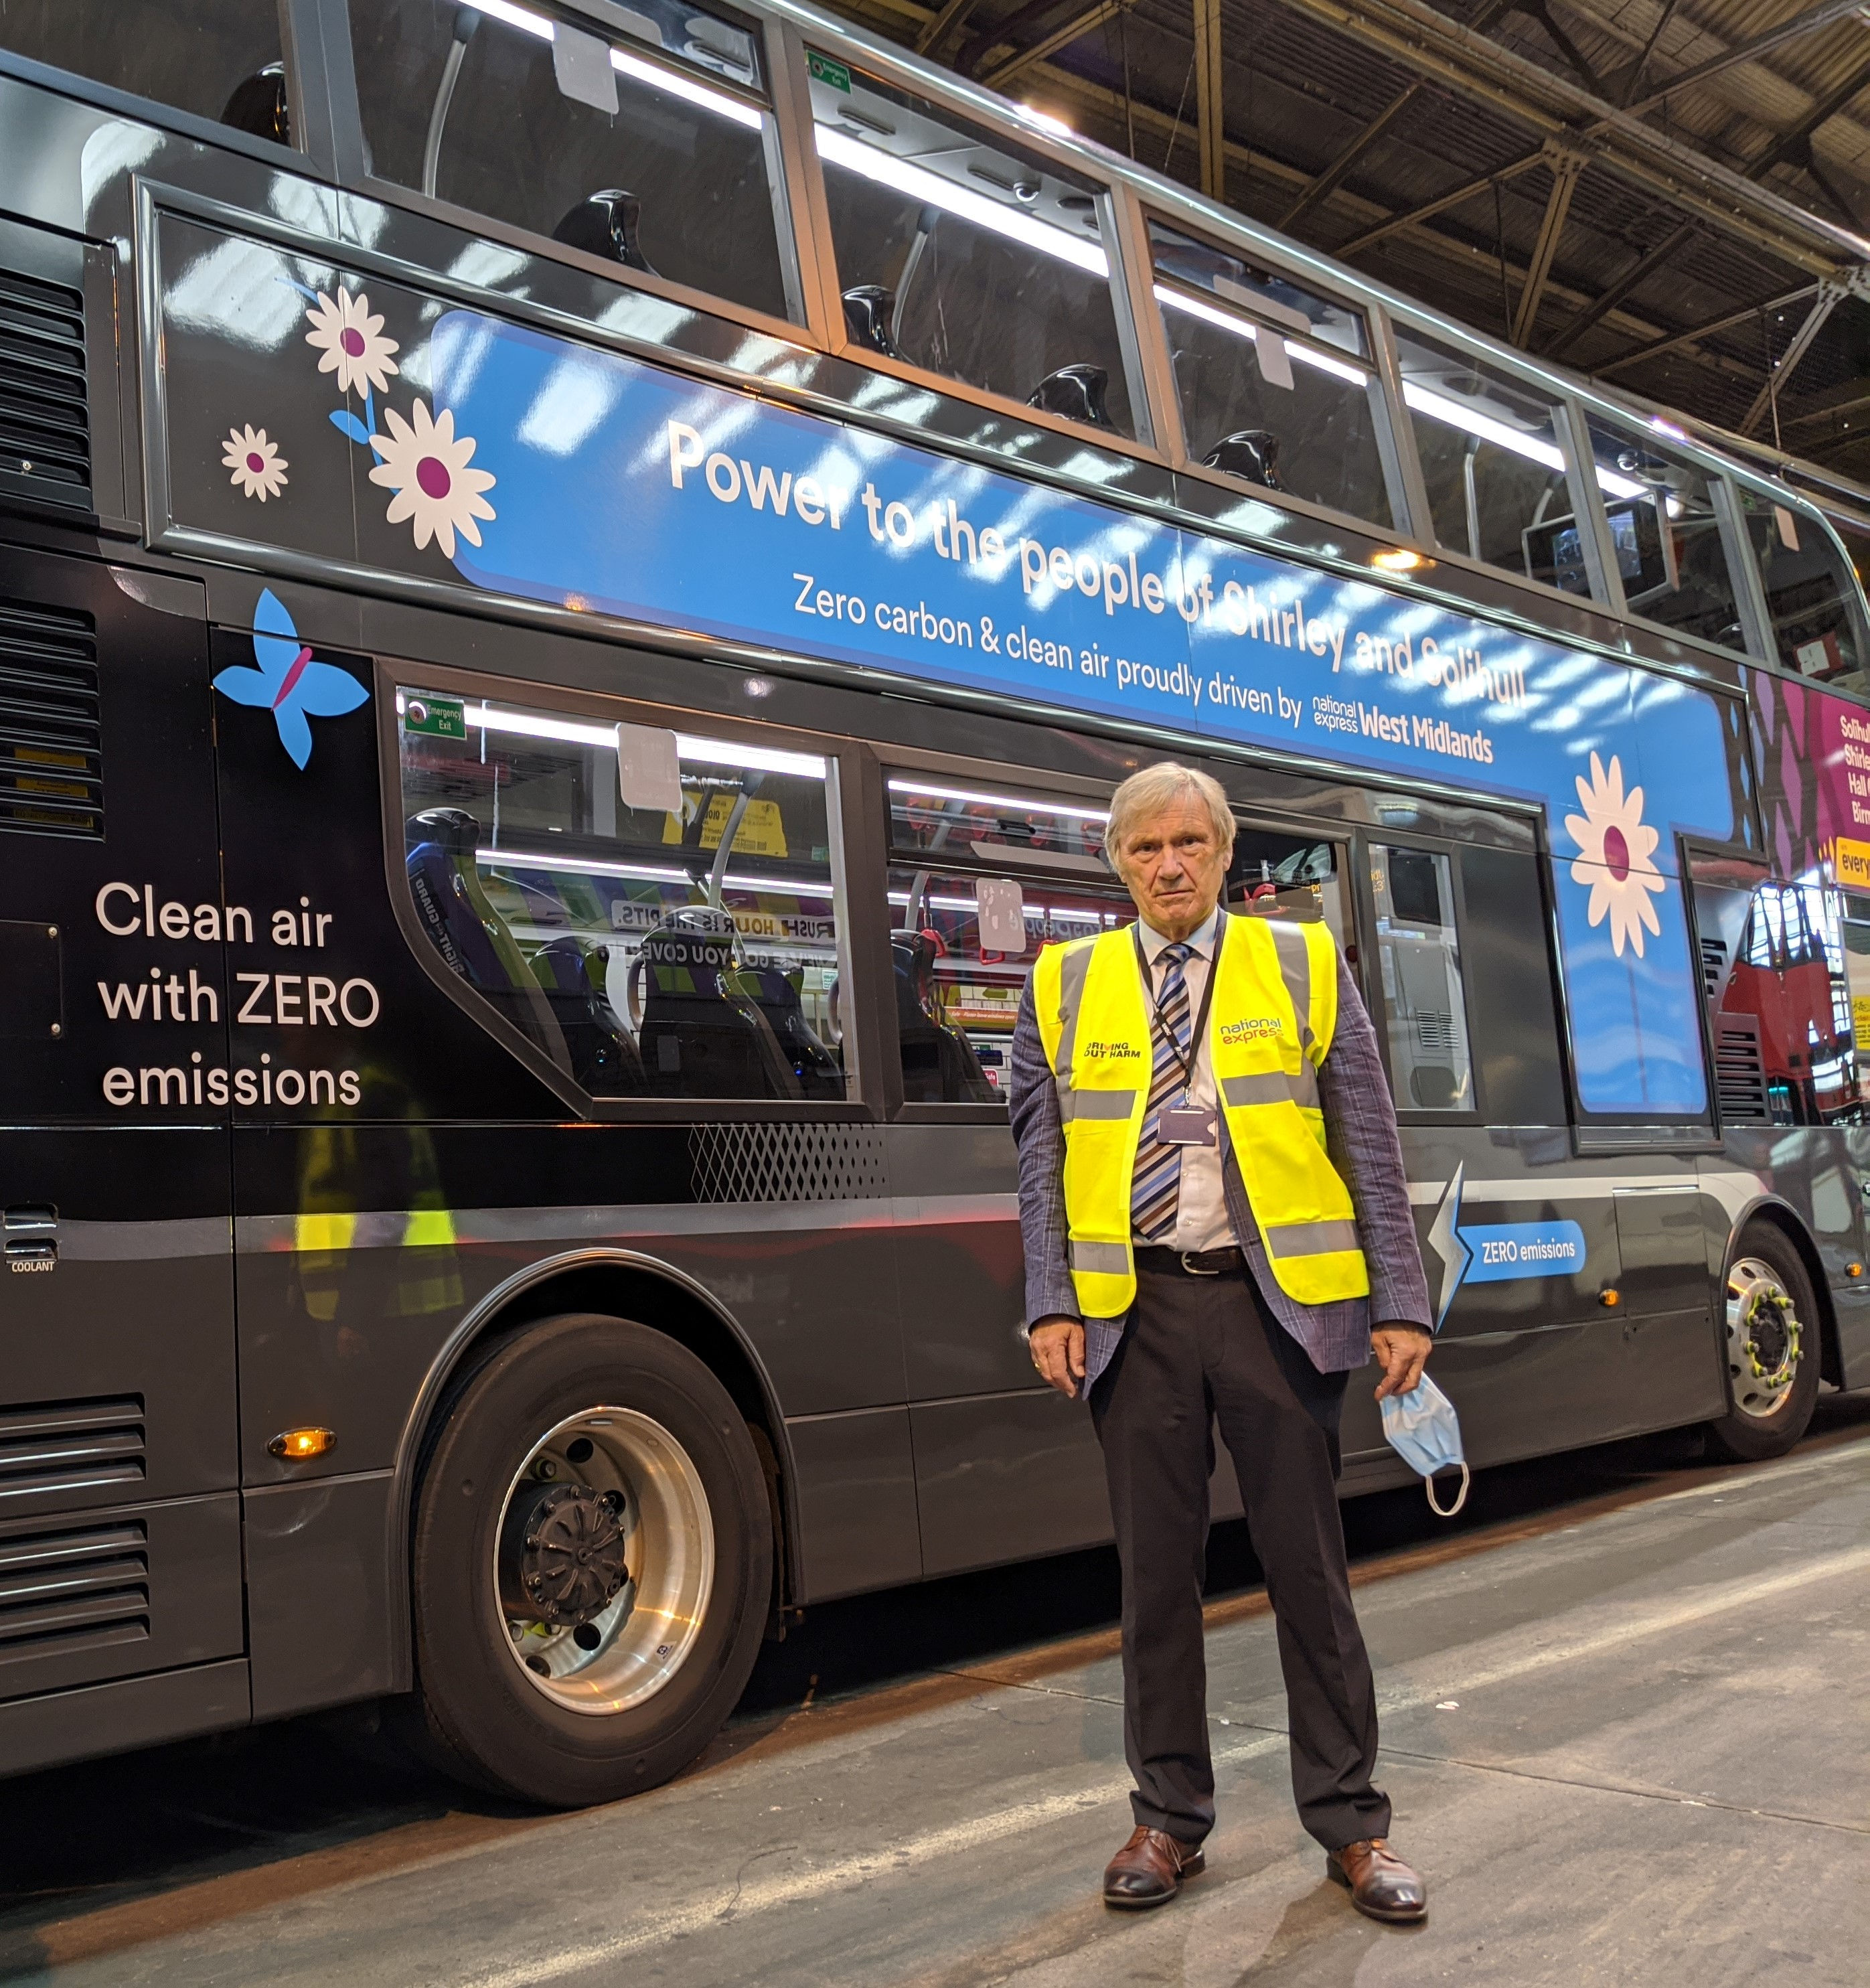 West Midlands Mayor praises bid to make bus fleet all electric